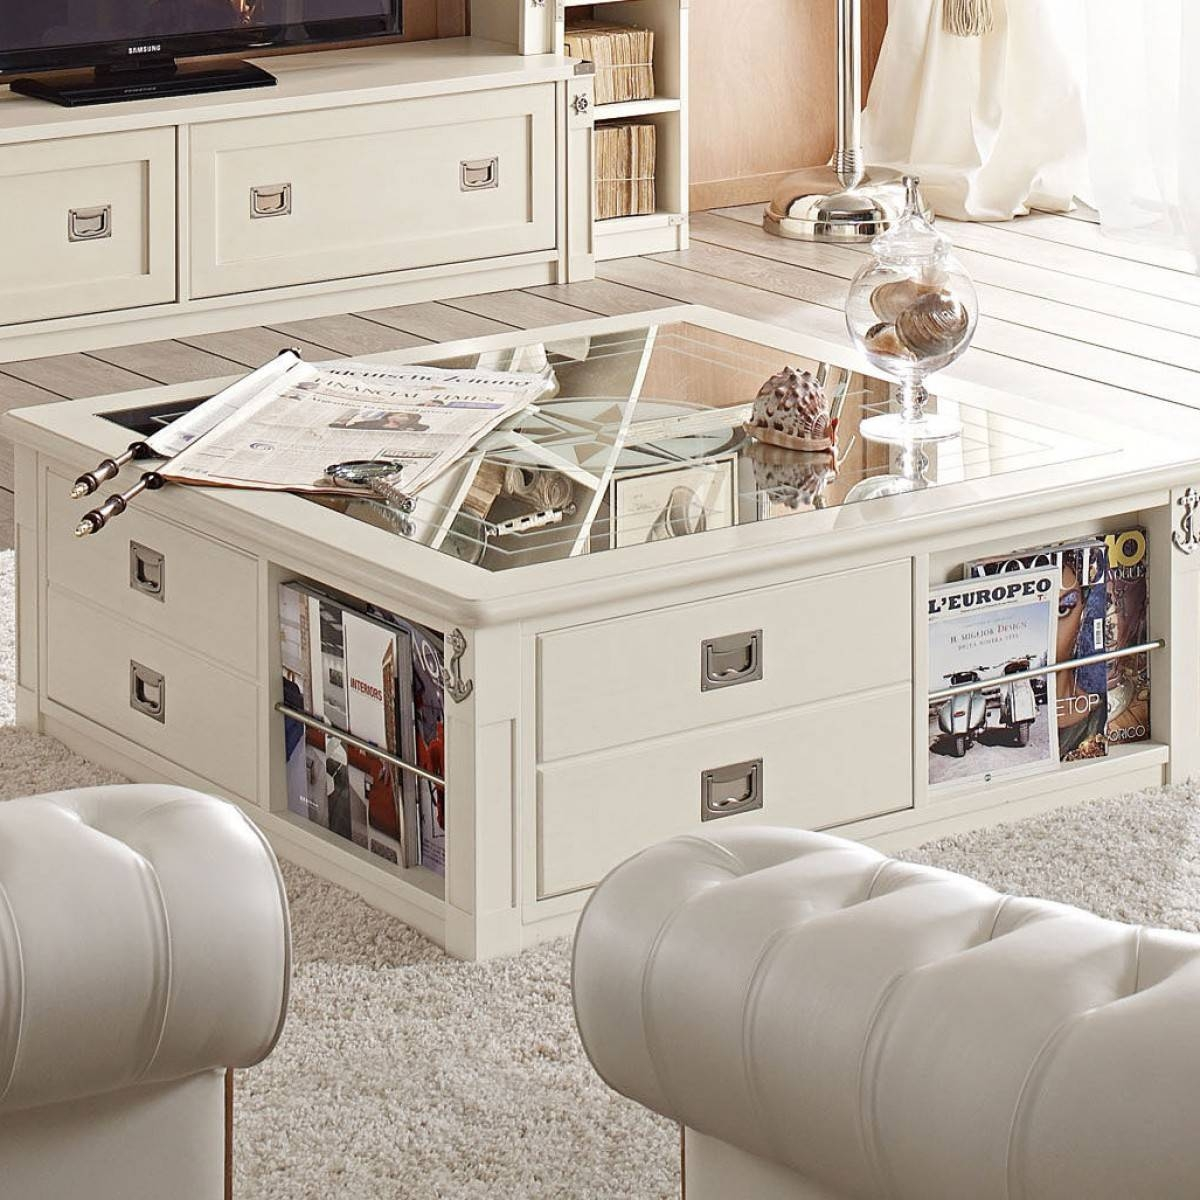 Interesting Decorative Of Square Coffee Tables With Storage inside Square Coffee Tables With Drawers (Image 19 of 30)